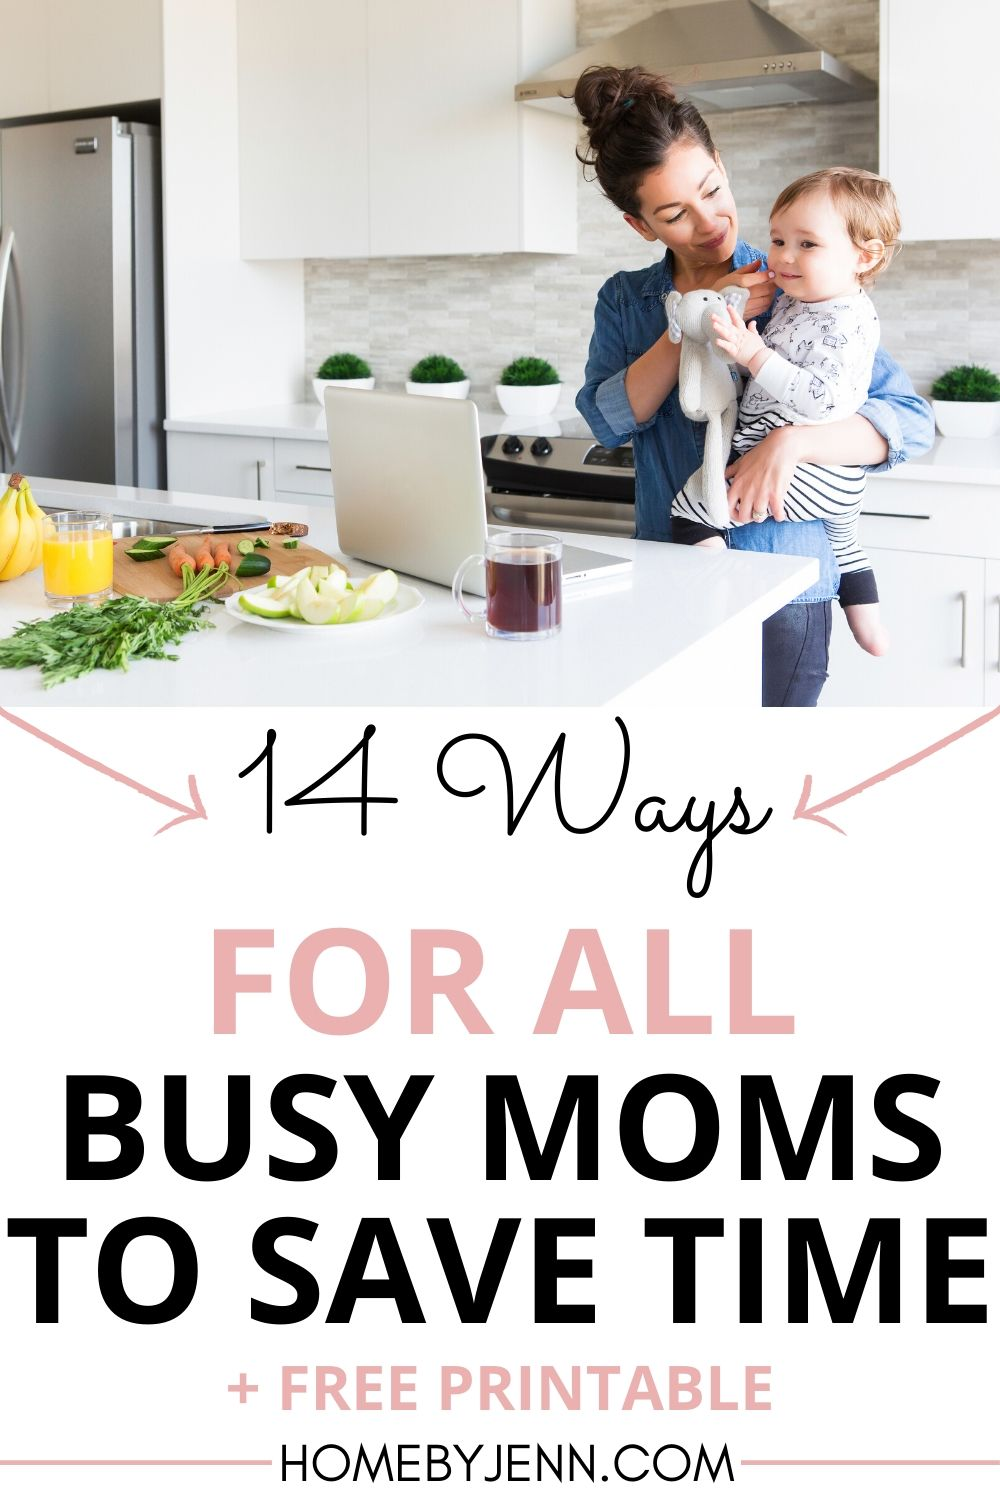 Follow these 14 Time Saving Tips to Save you time during the day. Great for busy moms always on the go #timesavingtips #hacks #organized #timemanagement #schedule #mealprep #chores via @homebyjenn